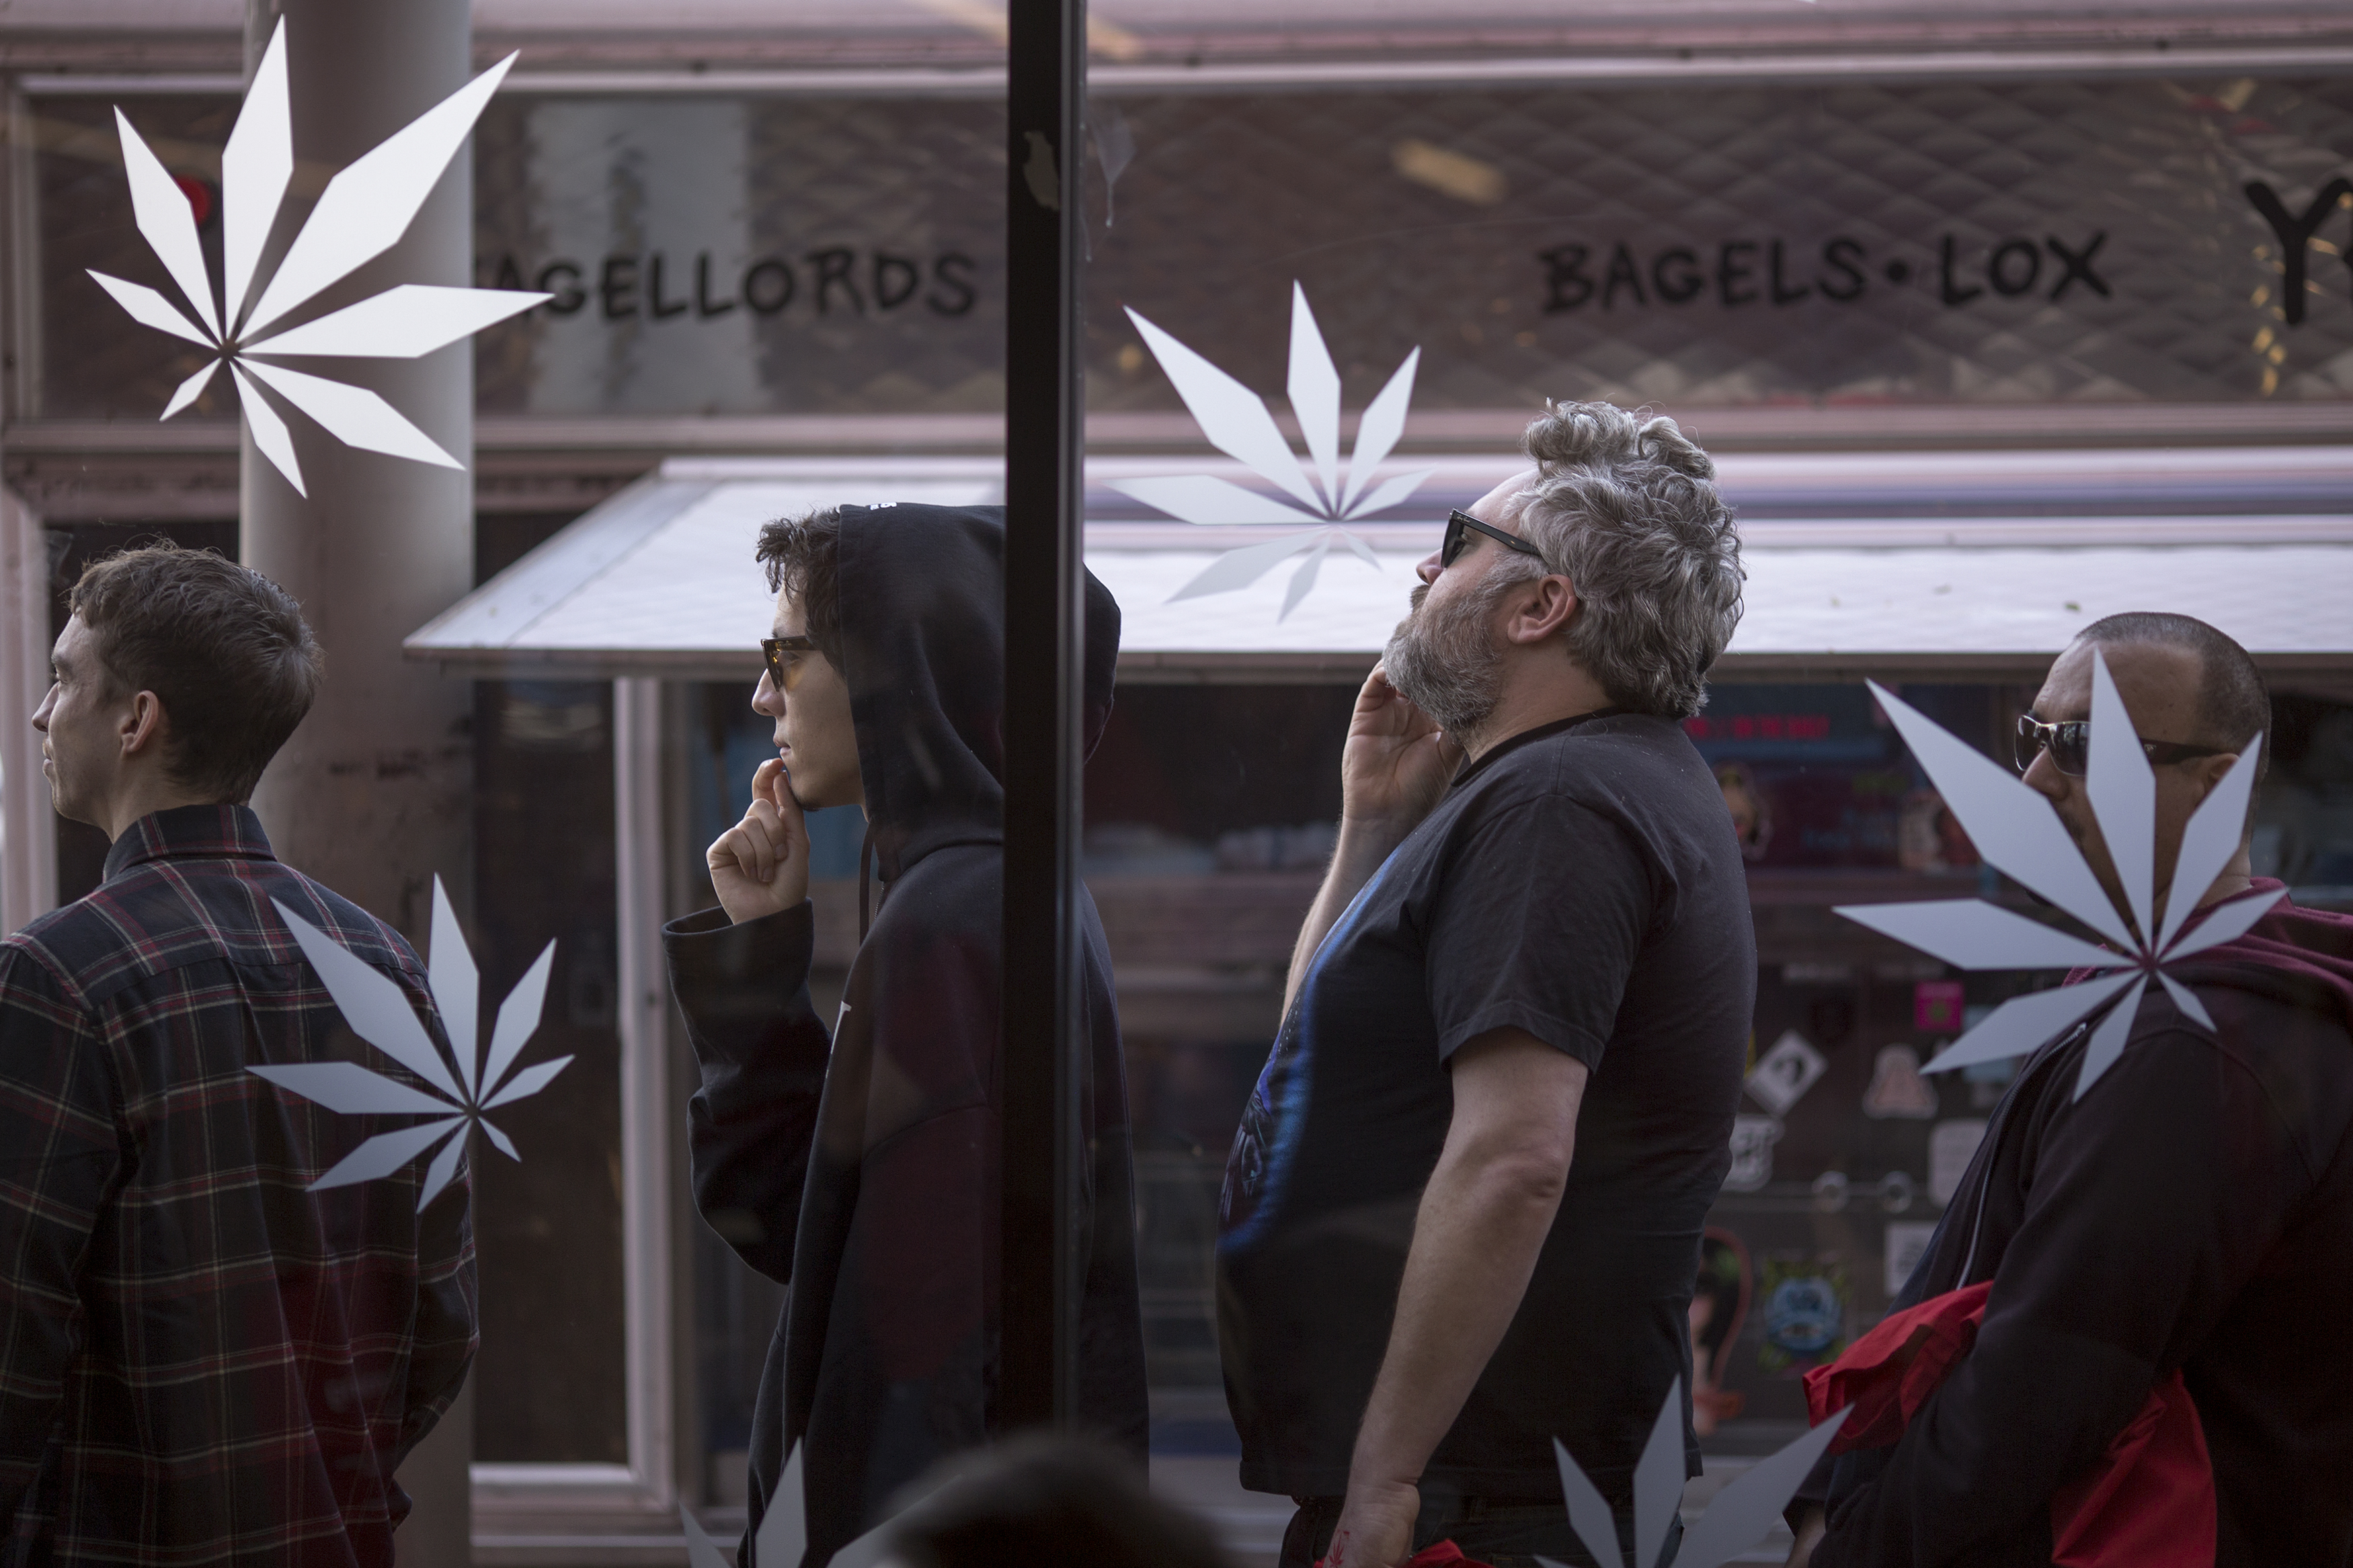 People stand in line to get into MedMen, one of the two Los Angeles area pot shops that began selling marijuana for recreational use under the new California marijuana law today, on January 2, 2018 in West Hollywood, California. Los Angeles and other nearby cities outside of West Hollywood have not finalized their local permitting rules so licenses to businesses in those jurisdictions are yet to be granted. (Getty Images)